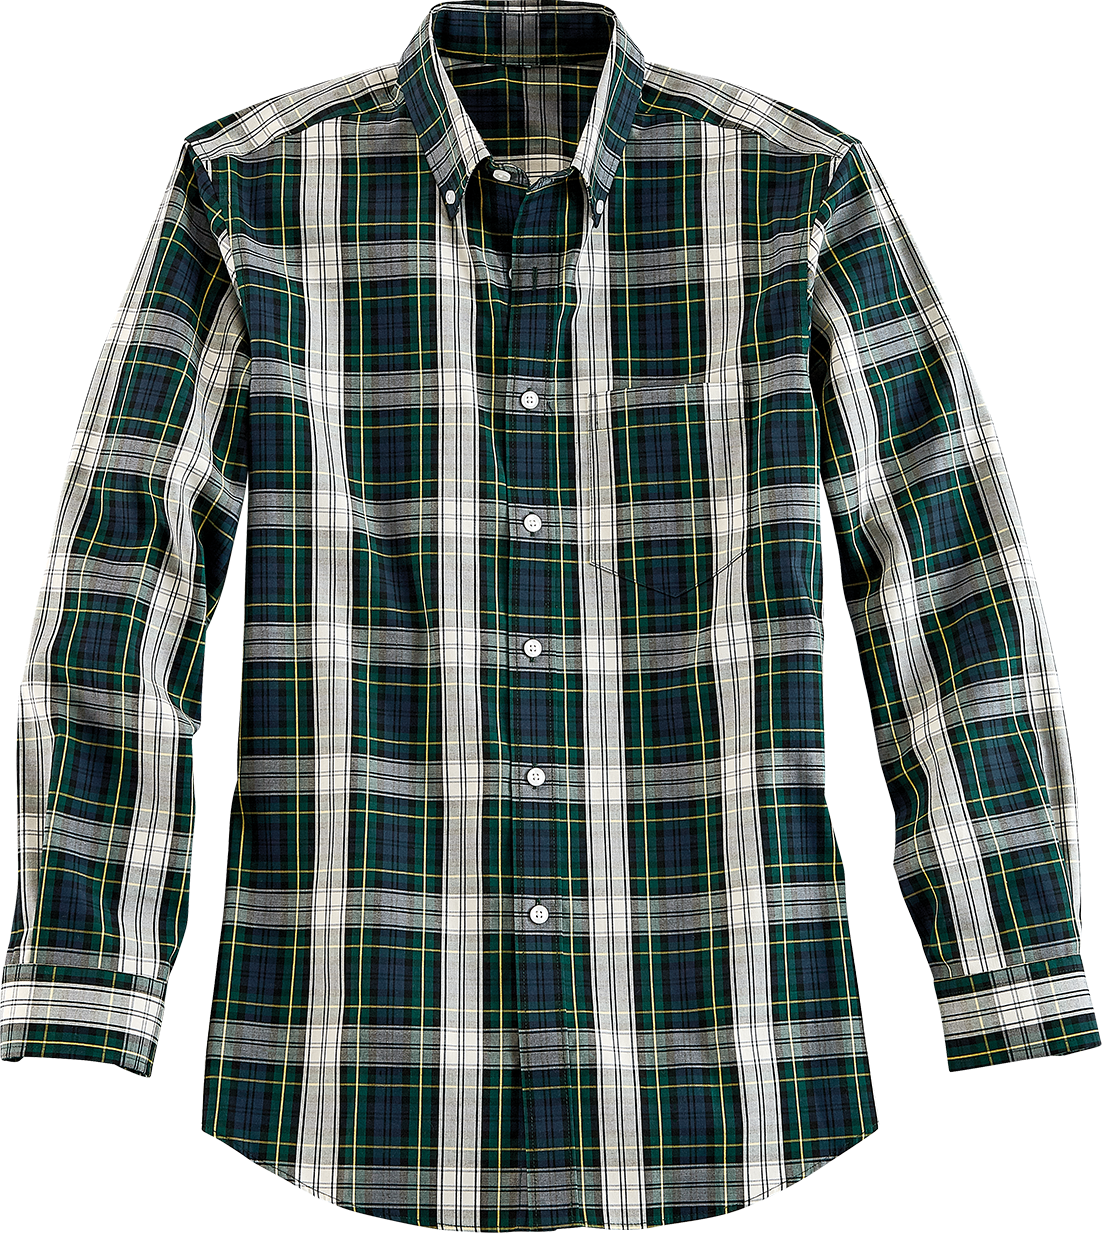 Orton Brothers Wrinkle-Free Tartan Oxford Shirt, Long Sleeve